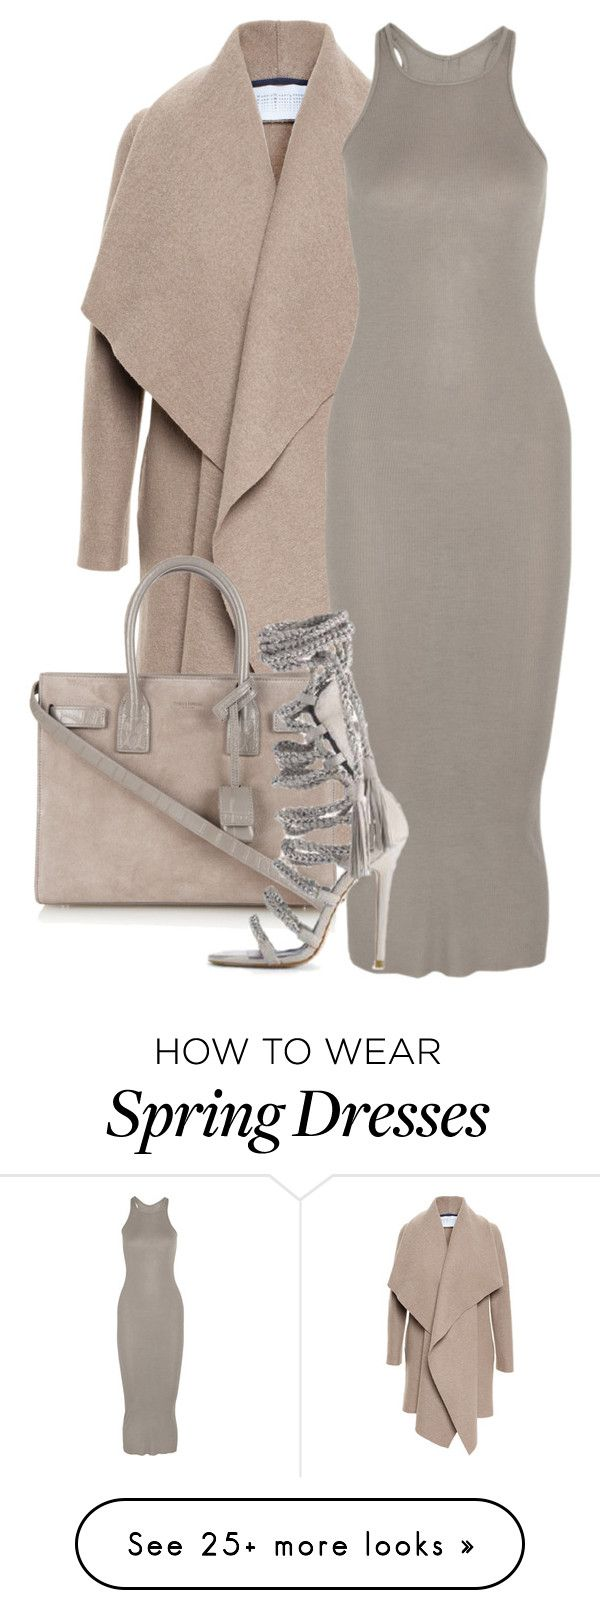 """""""Untitled #137"""" by pariszouzounis on Polyvore featuring Harris Wharf London, Rick Owens, Yves Saint Laurent and Monika Chiang"""